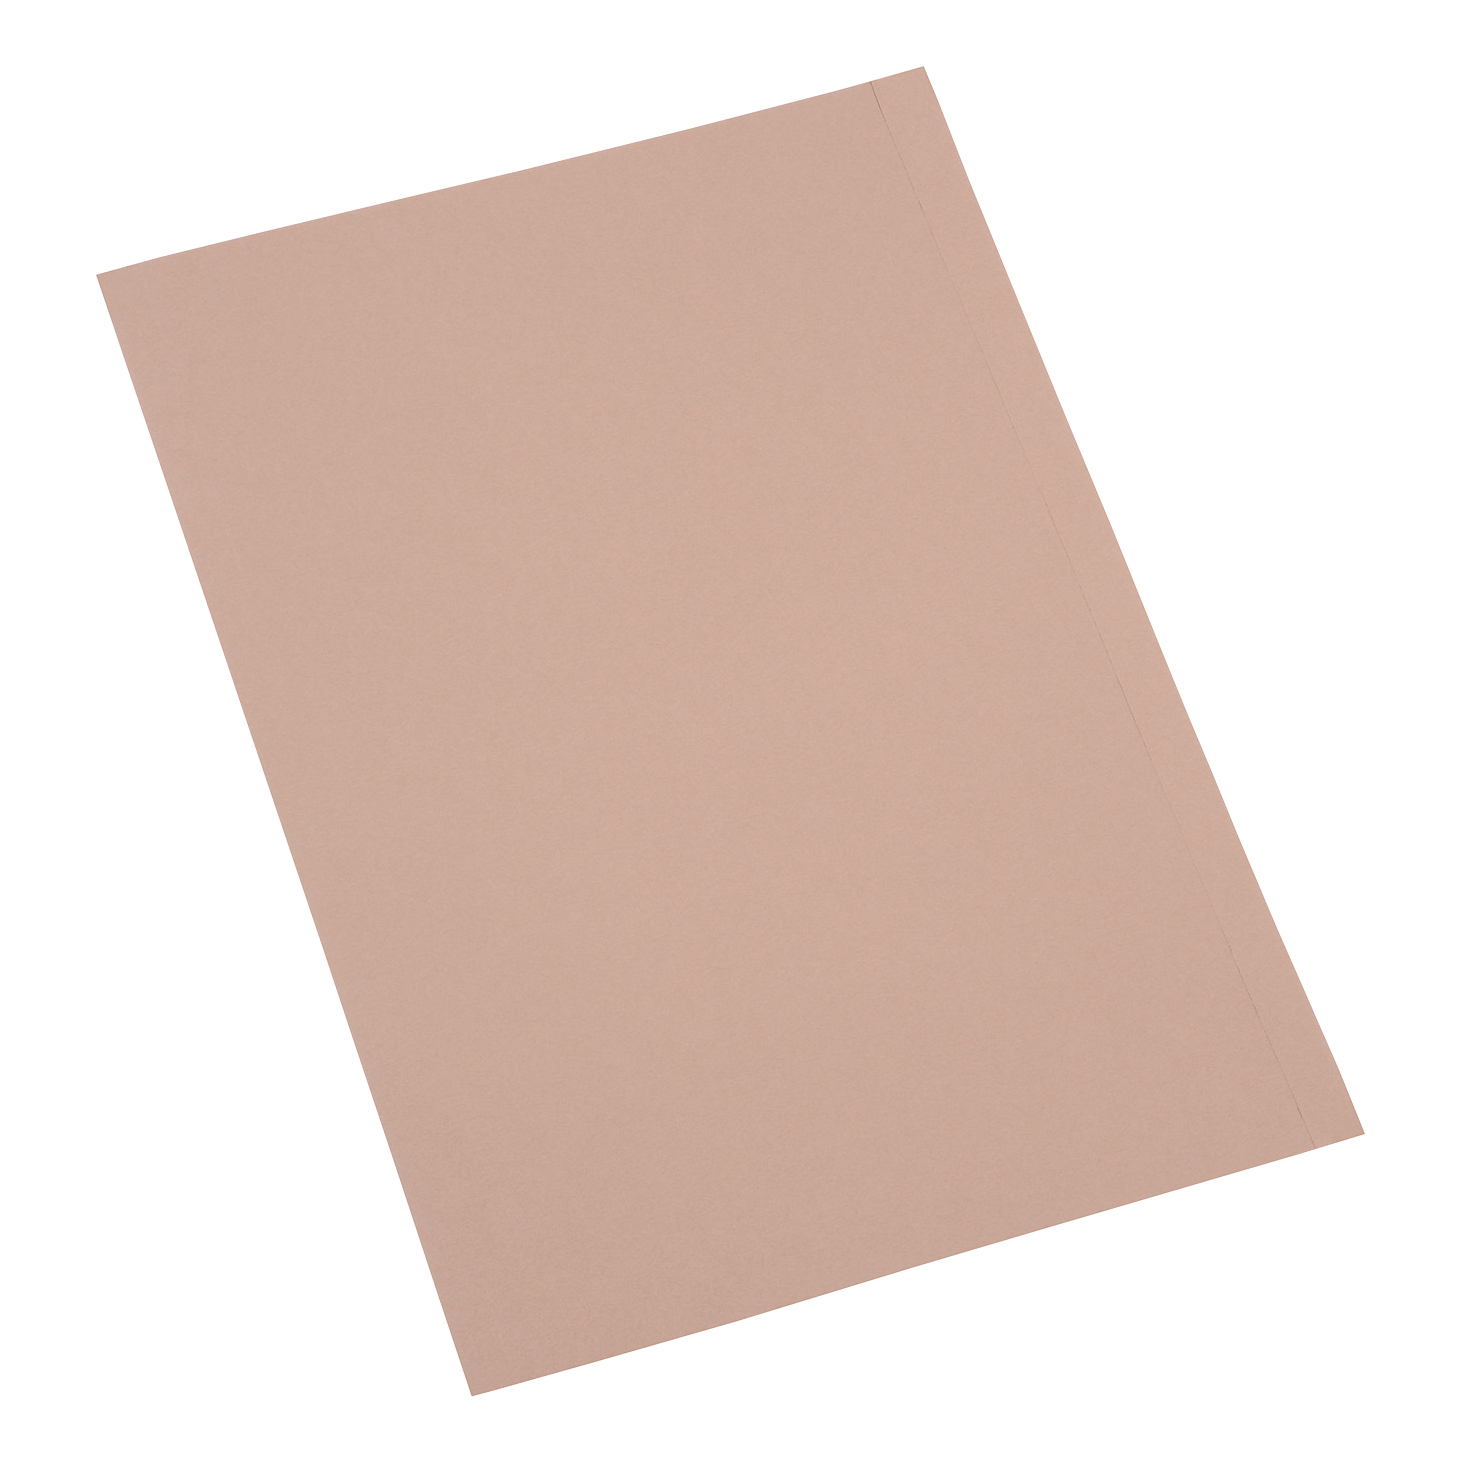 Square Cut Folders 5 Star Office Square Cut Folder Recycled 180gsm Foolscap Buff Pack 100